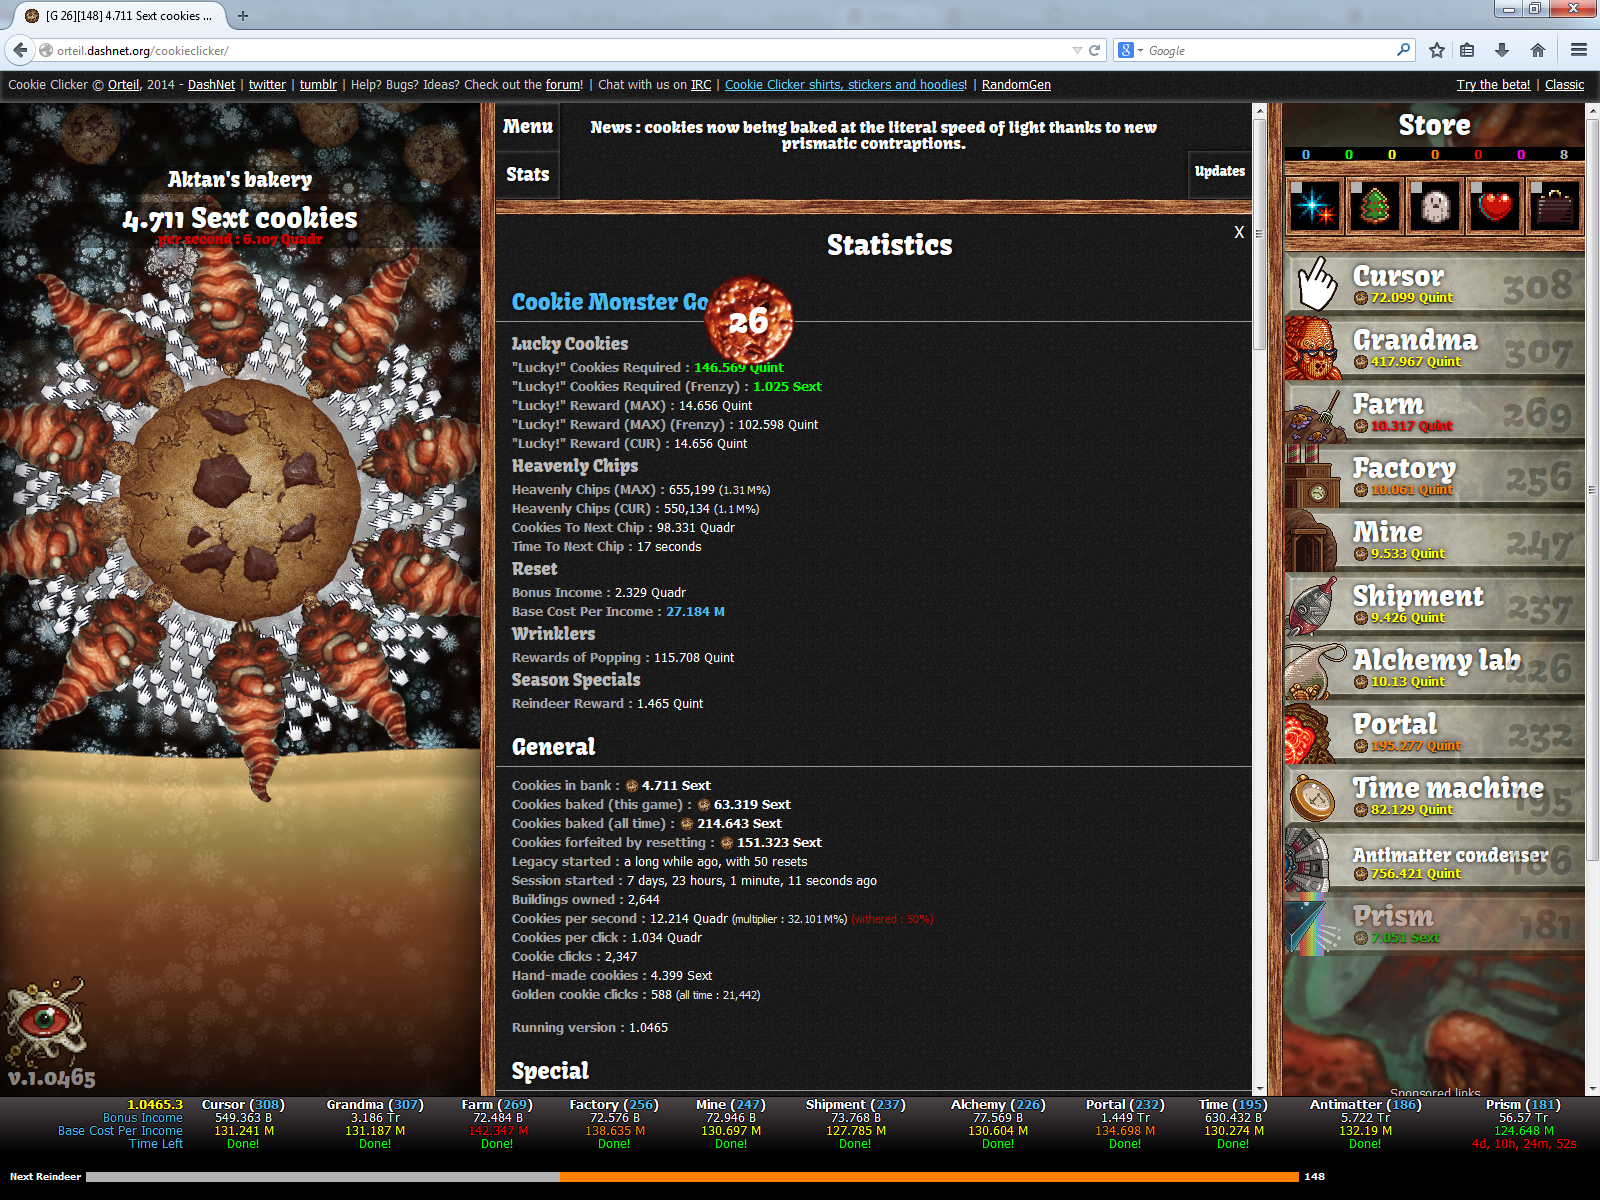 Cookie Monster (JavaScript Add-on) | Cookie Clicker Wiki